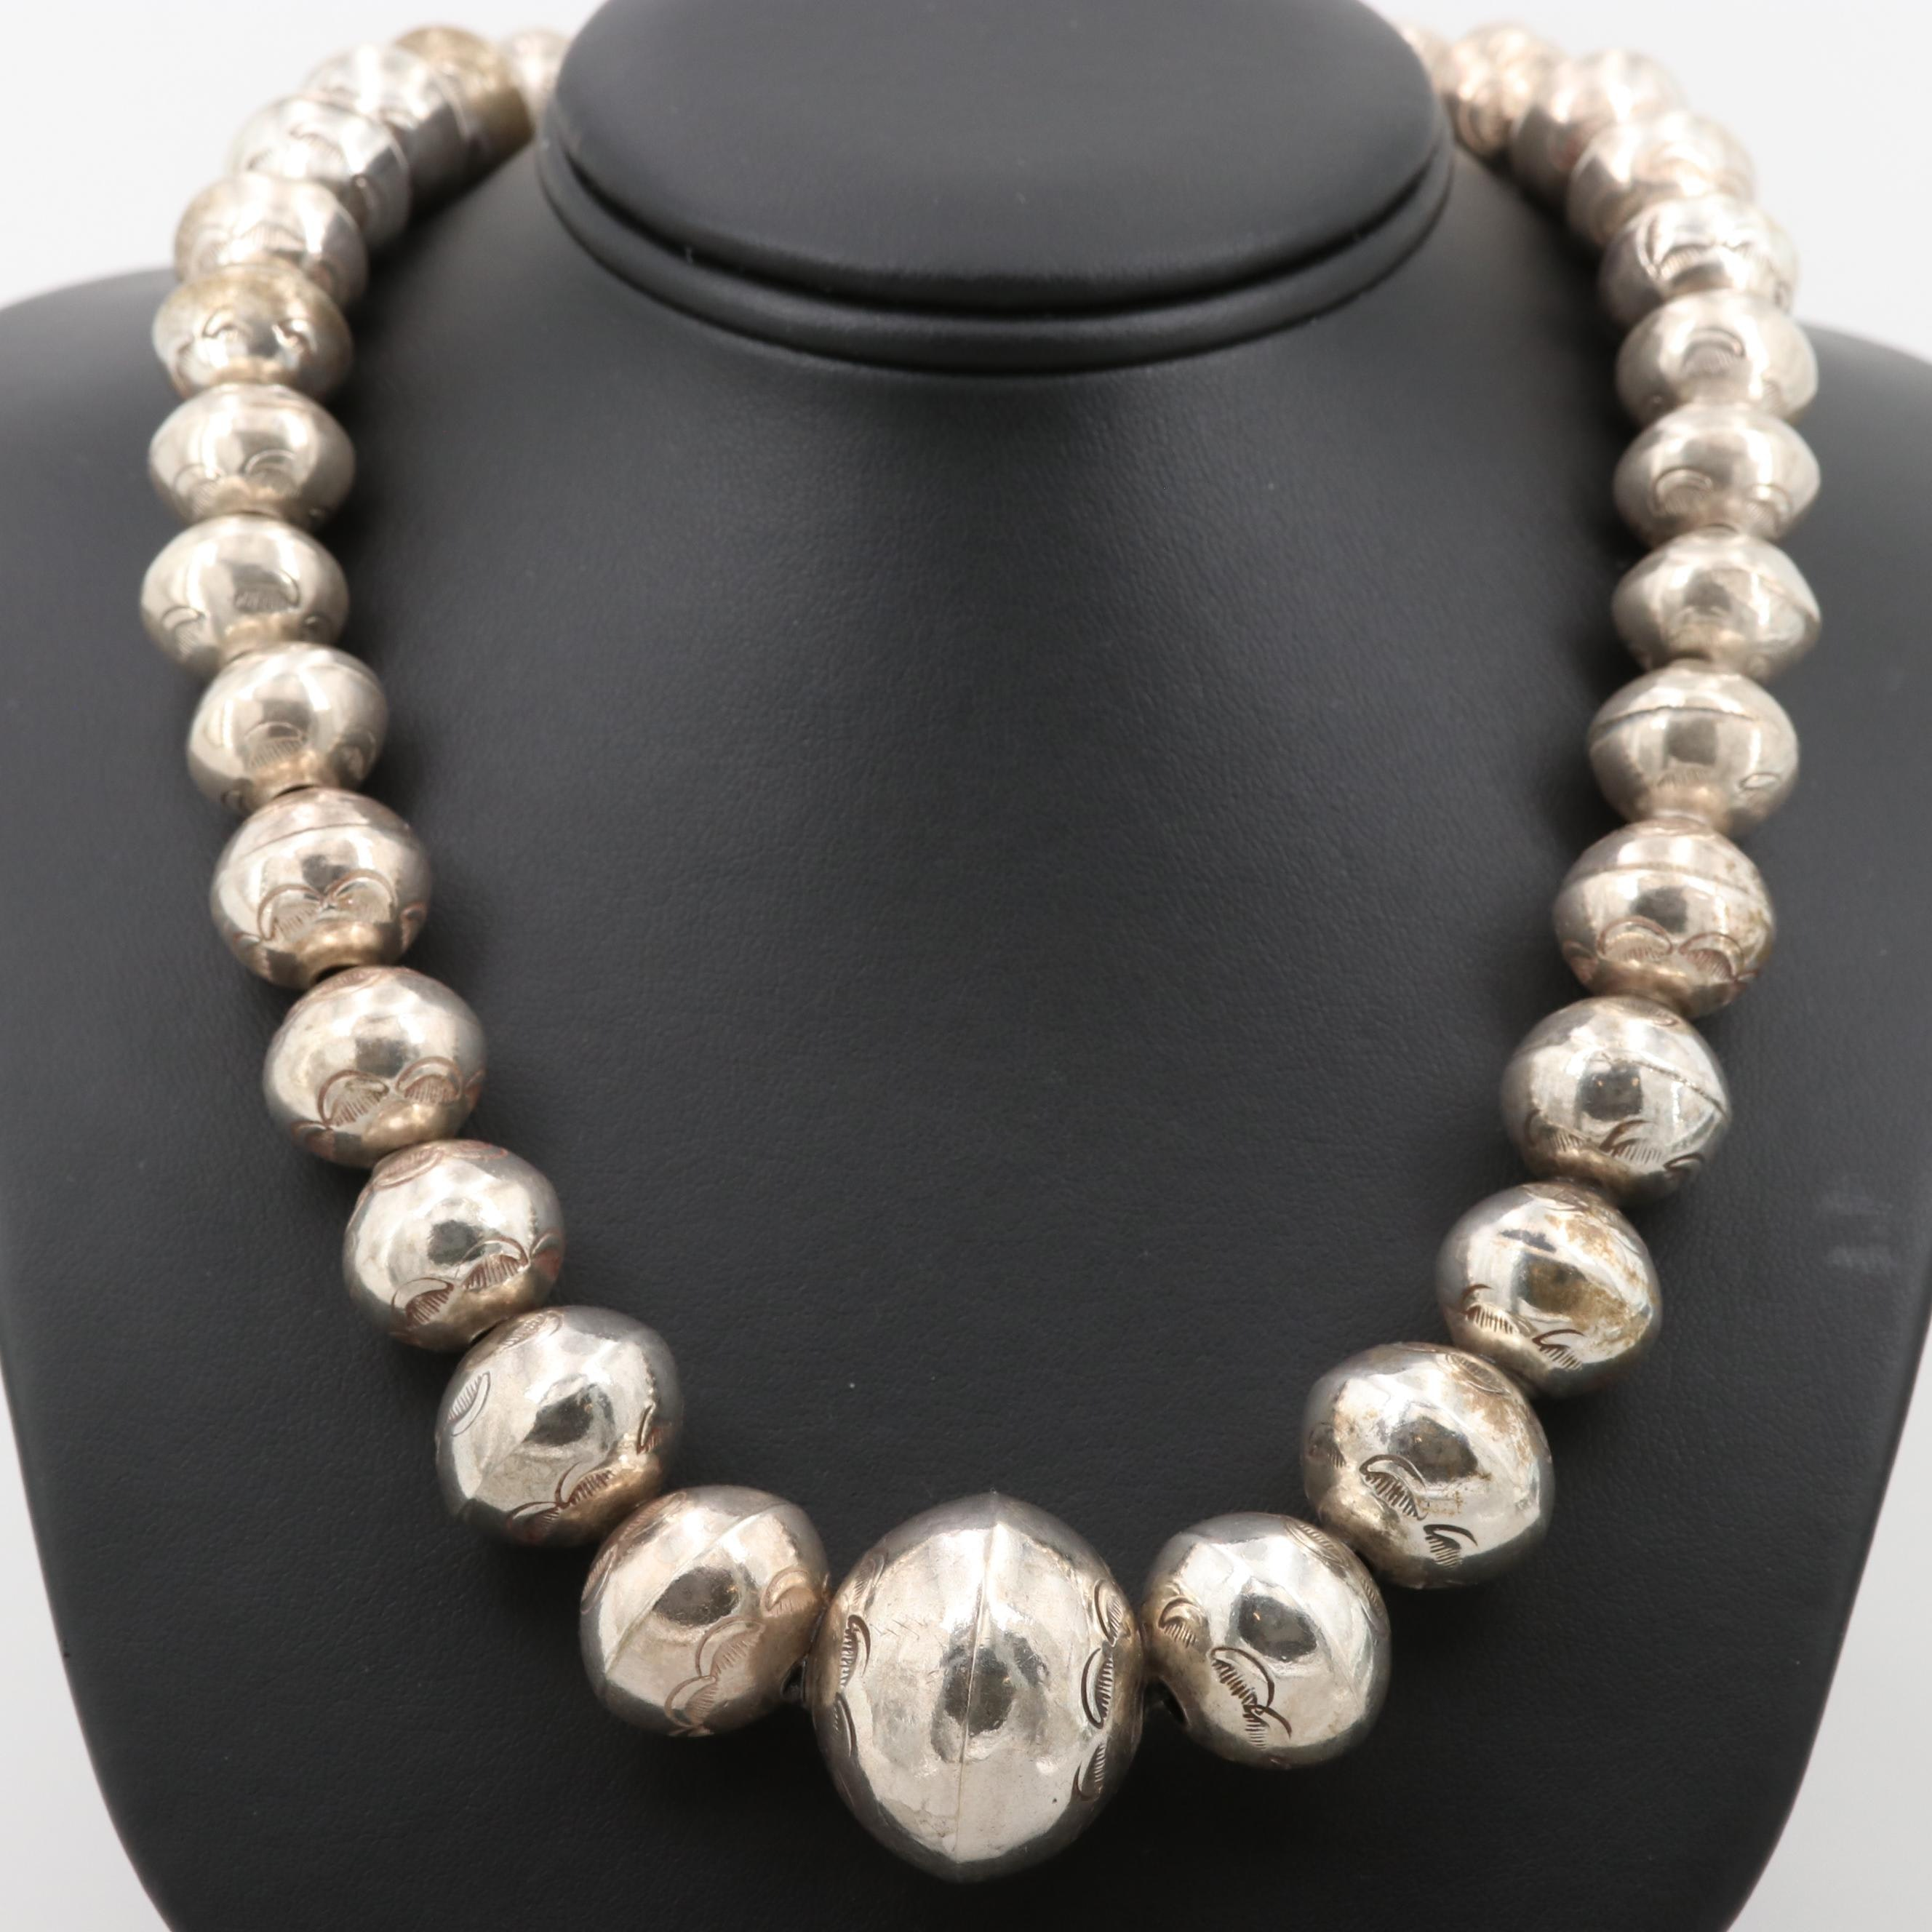 Southwestern Style Sterling Silver Graduated Stamp Work Bead Necklace